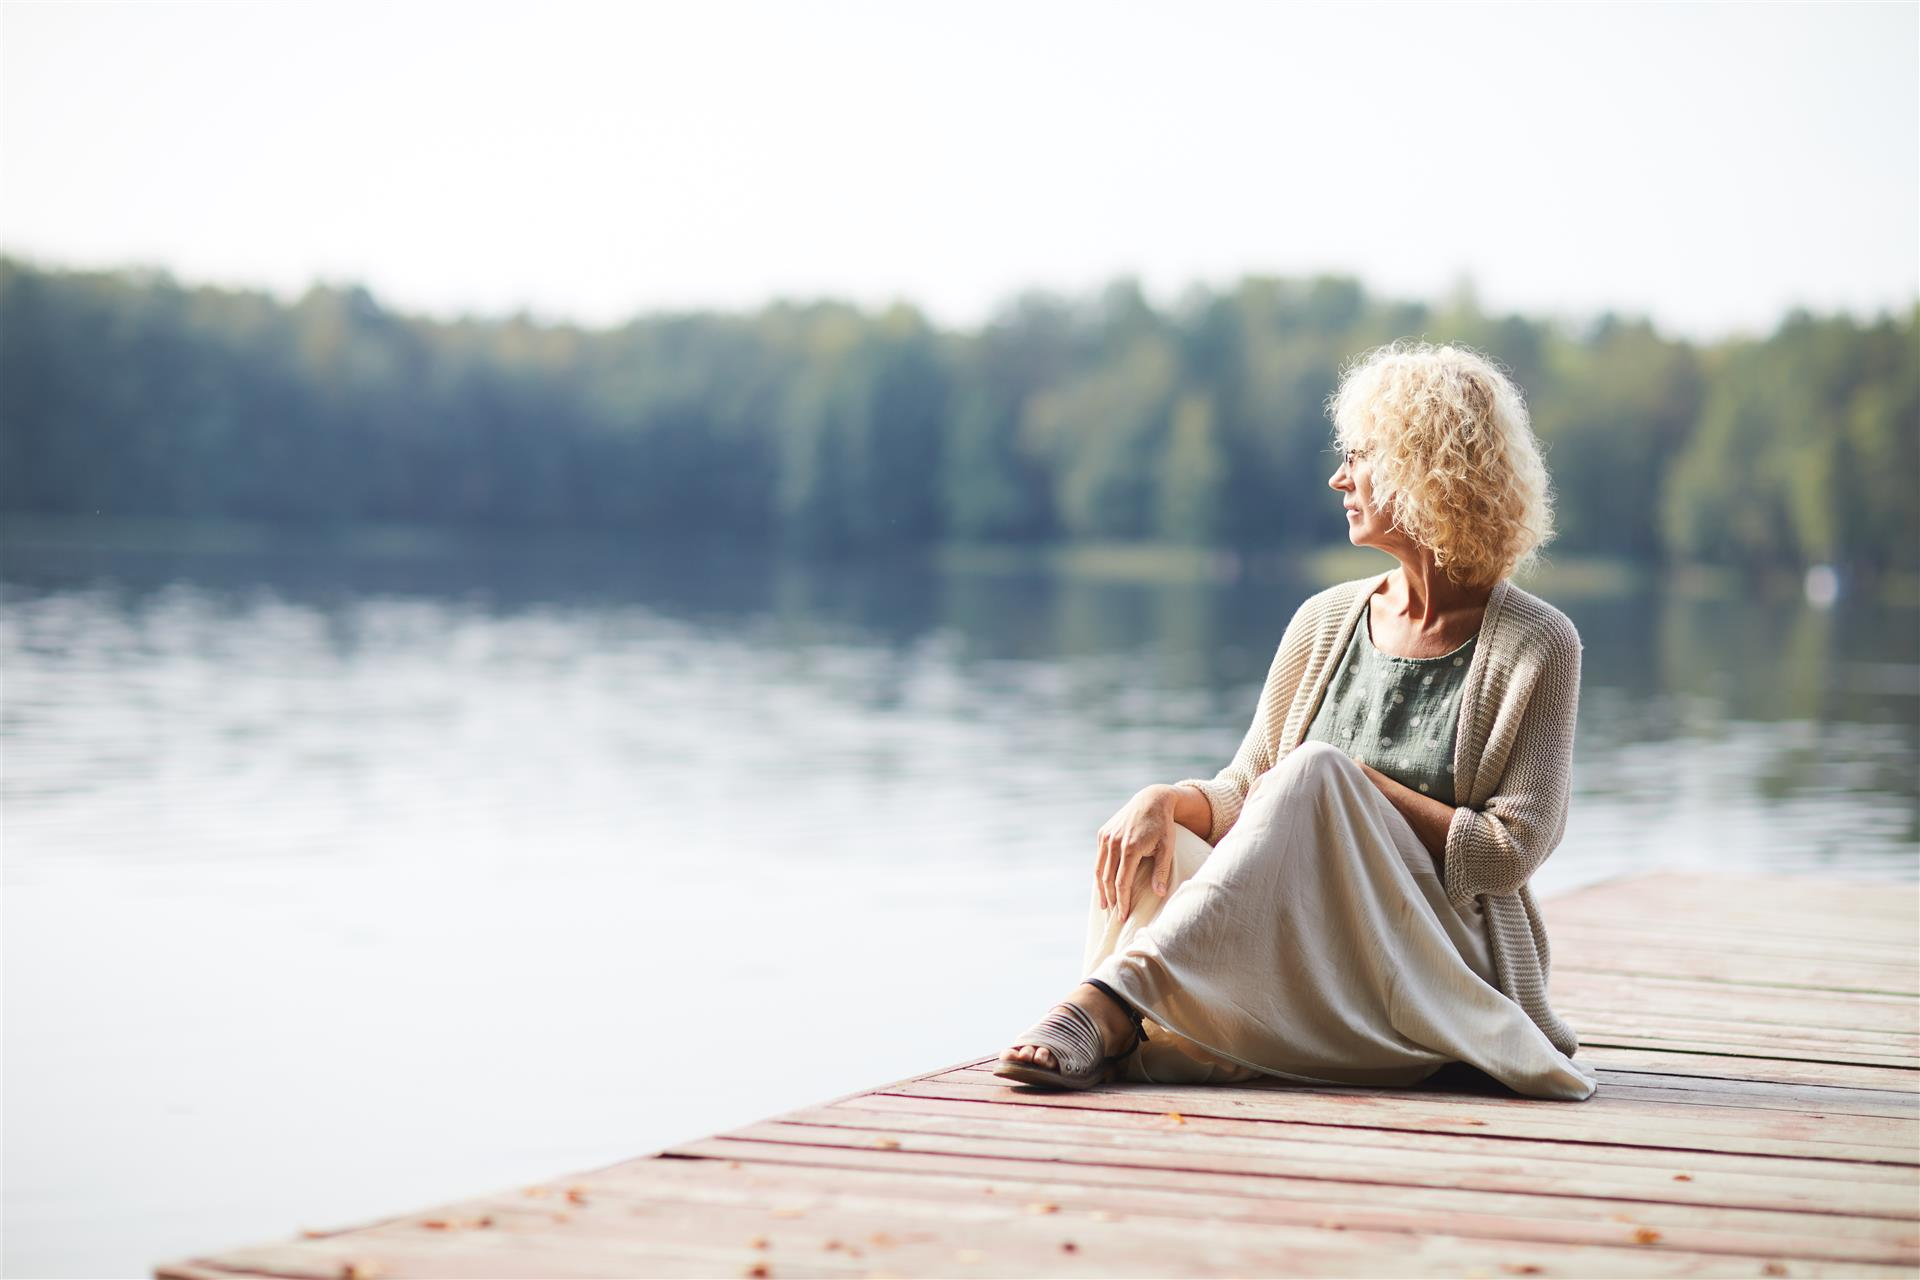 STAY AT HOME RETREATS: HOW TO GET CLOSER TO GOD WITHOUT LEAVING YOUR ASSISTED LIVING COMMUNITY